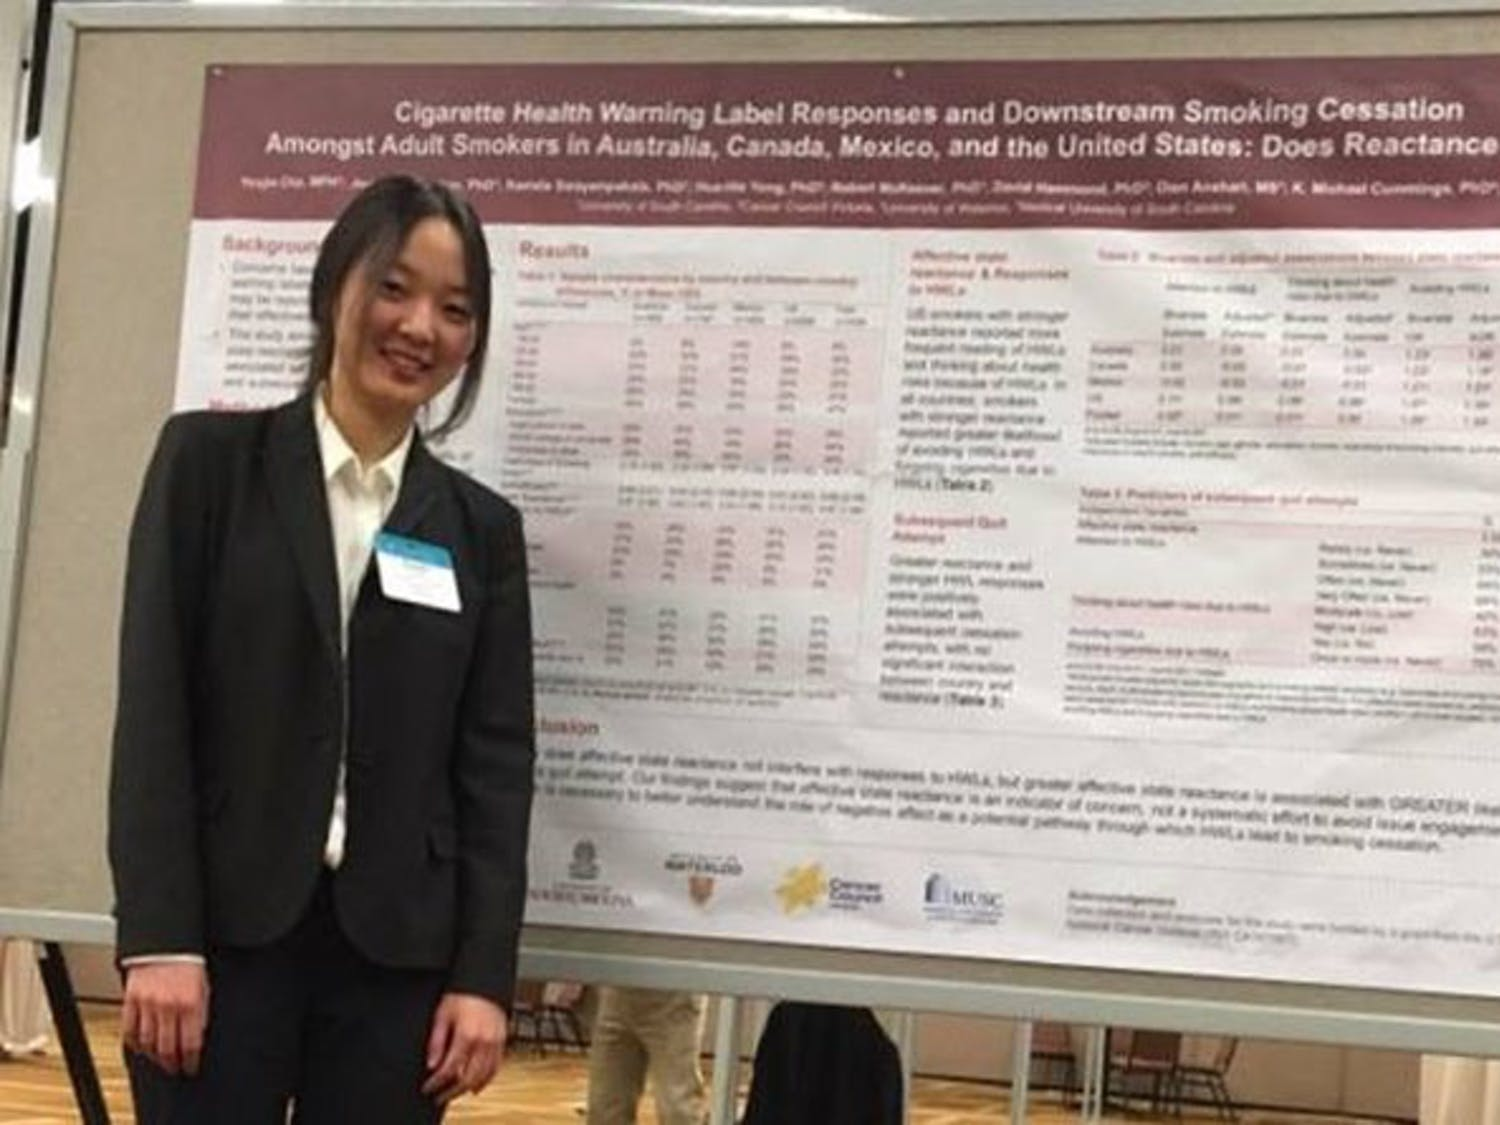 Yoojin Cho stands in front of her research presentation at the Society for Research on Nicotine and Tobacco conference.